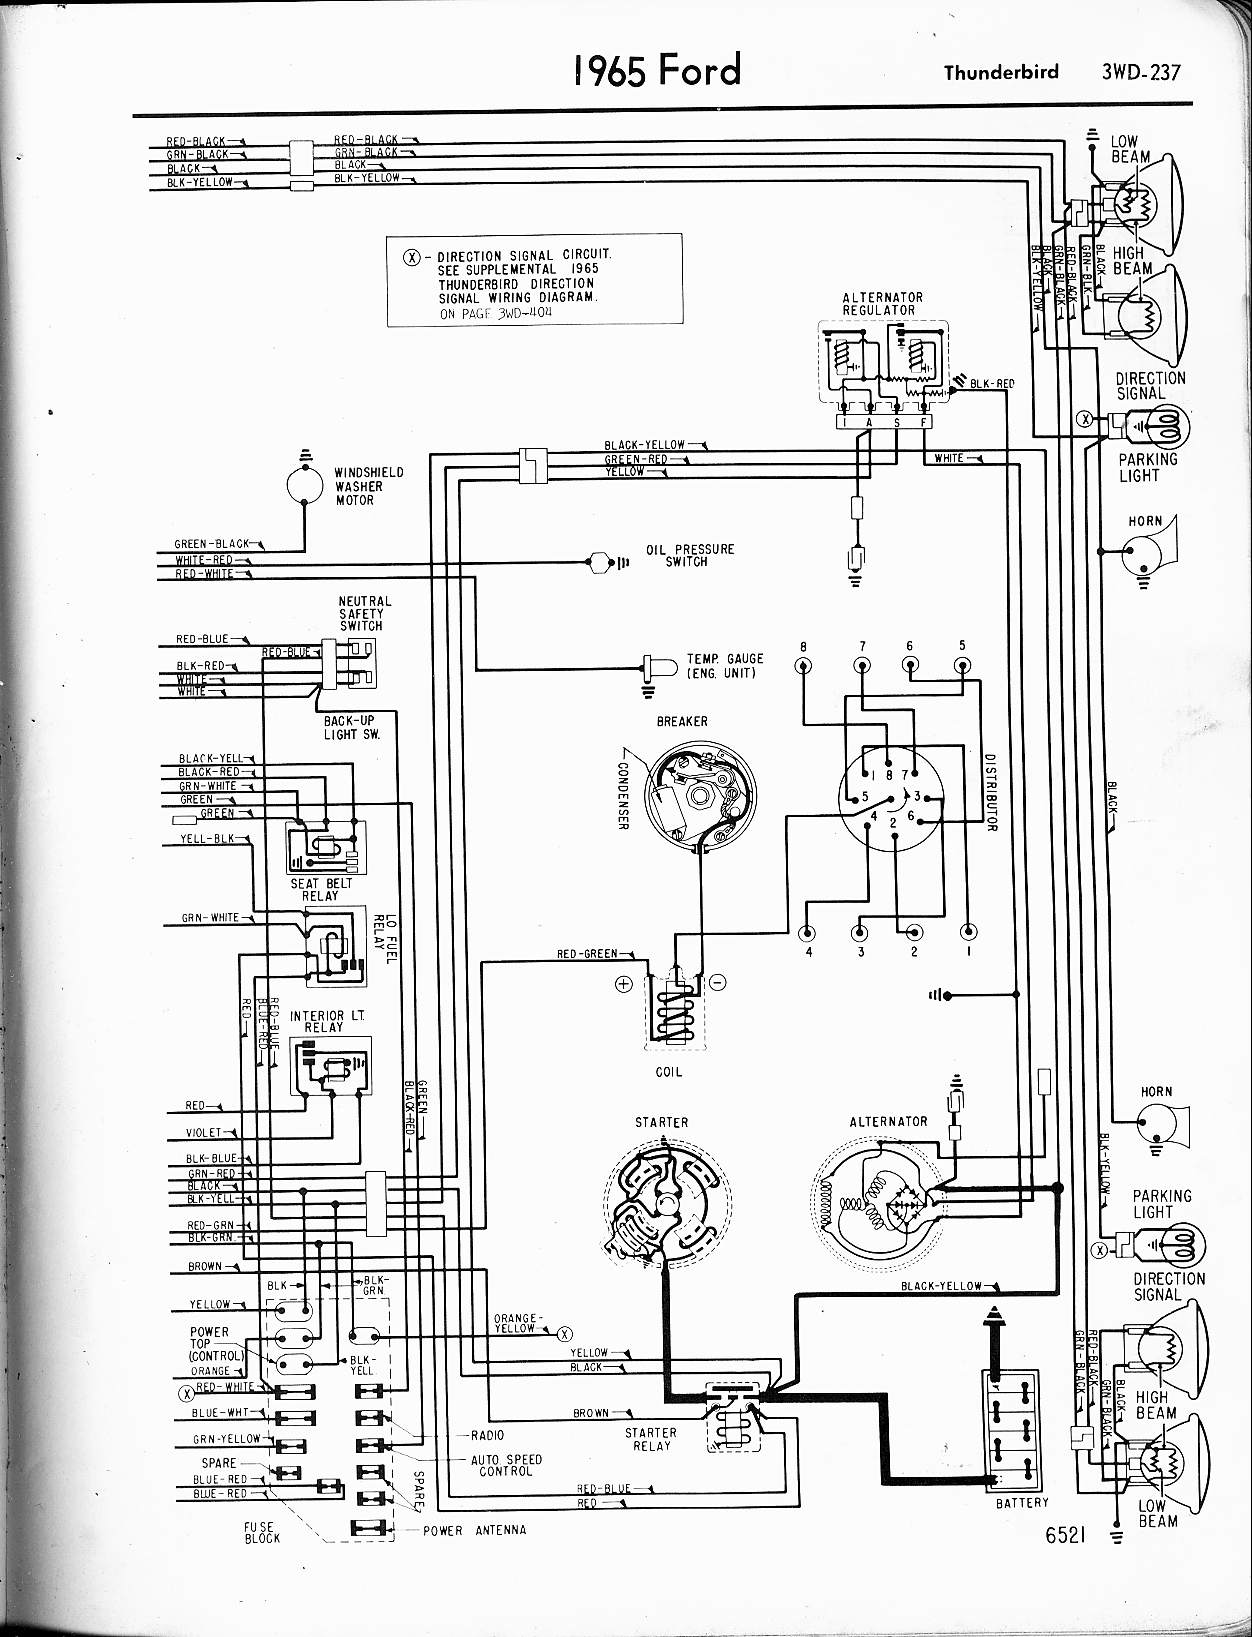 1965 ford thunderbird wiring diagrams wire center u2022 rh ayseesra co 1955 Ford Thunderbird Wiring Diagram 56 Ford Thunderbird Wiring Diagram